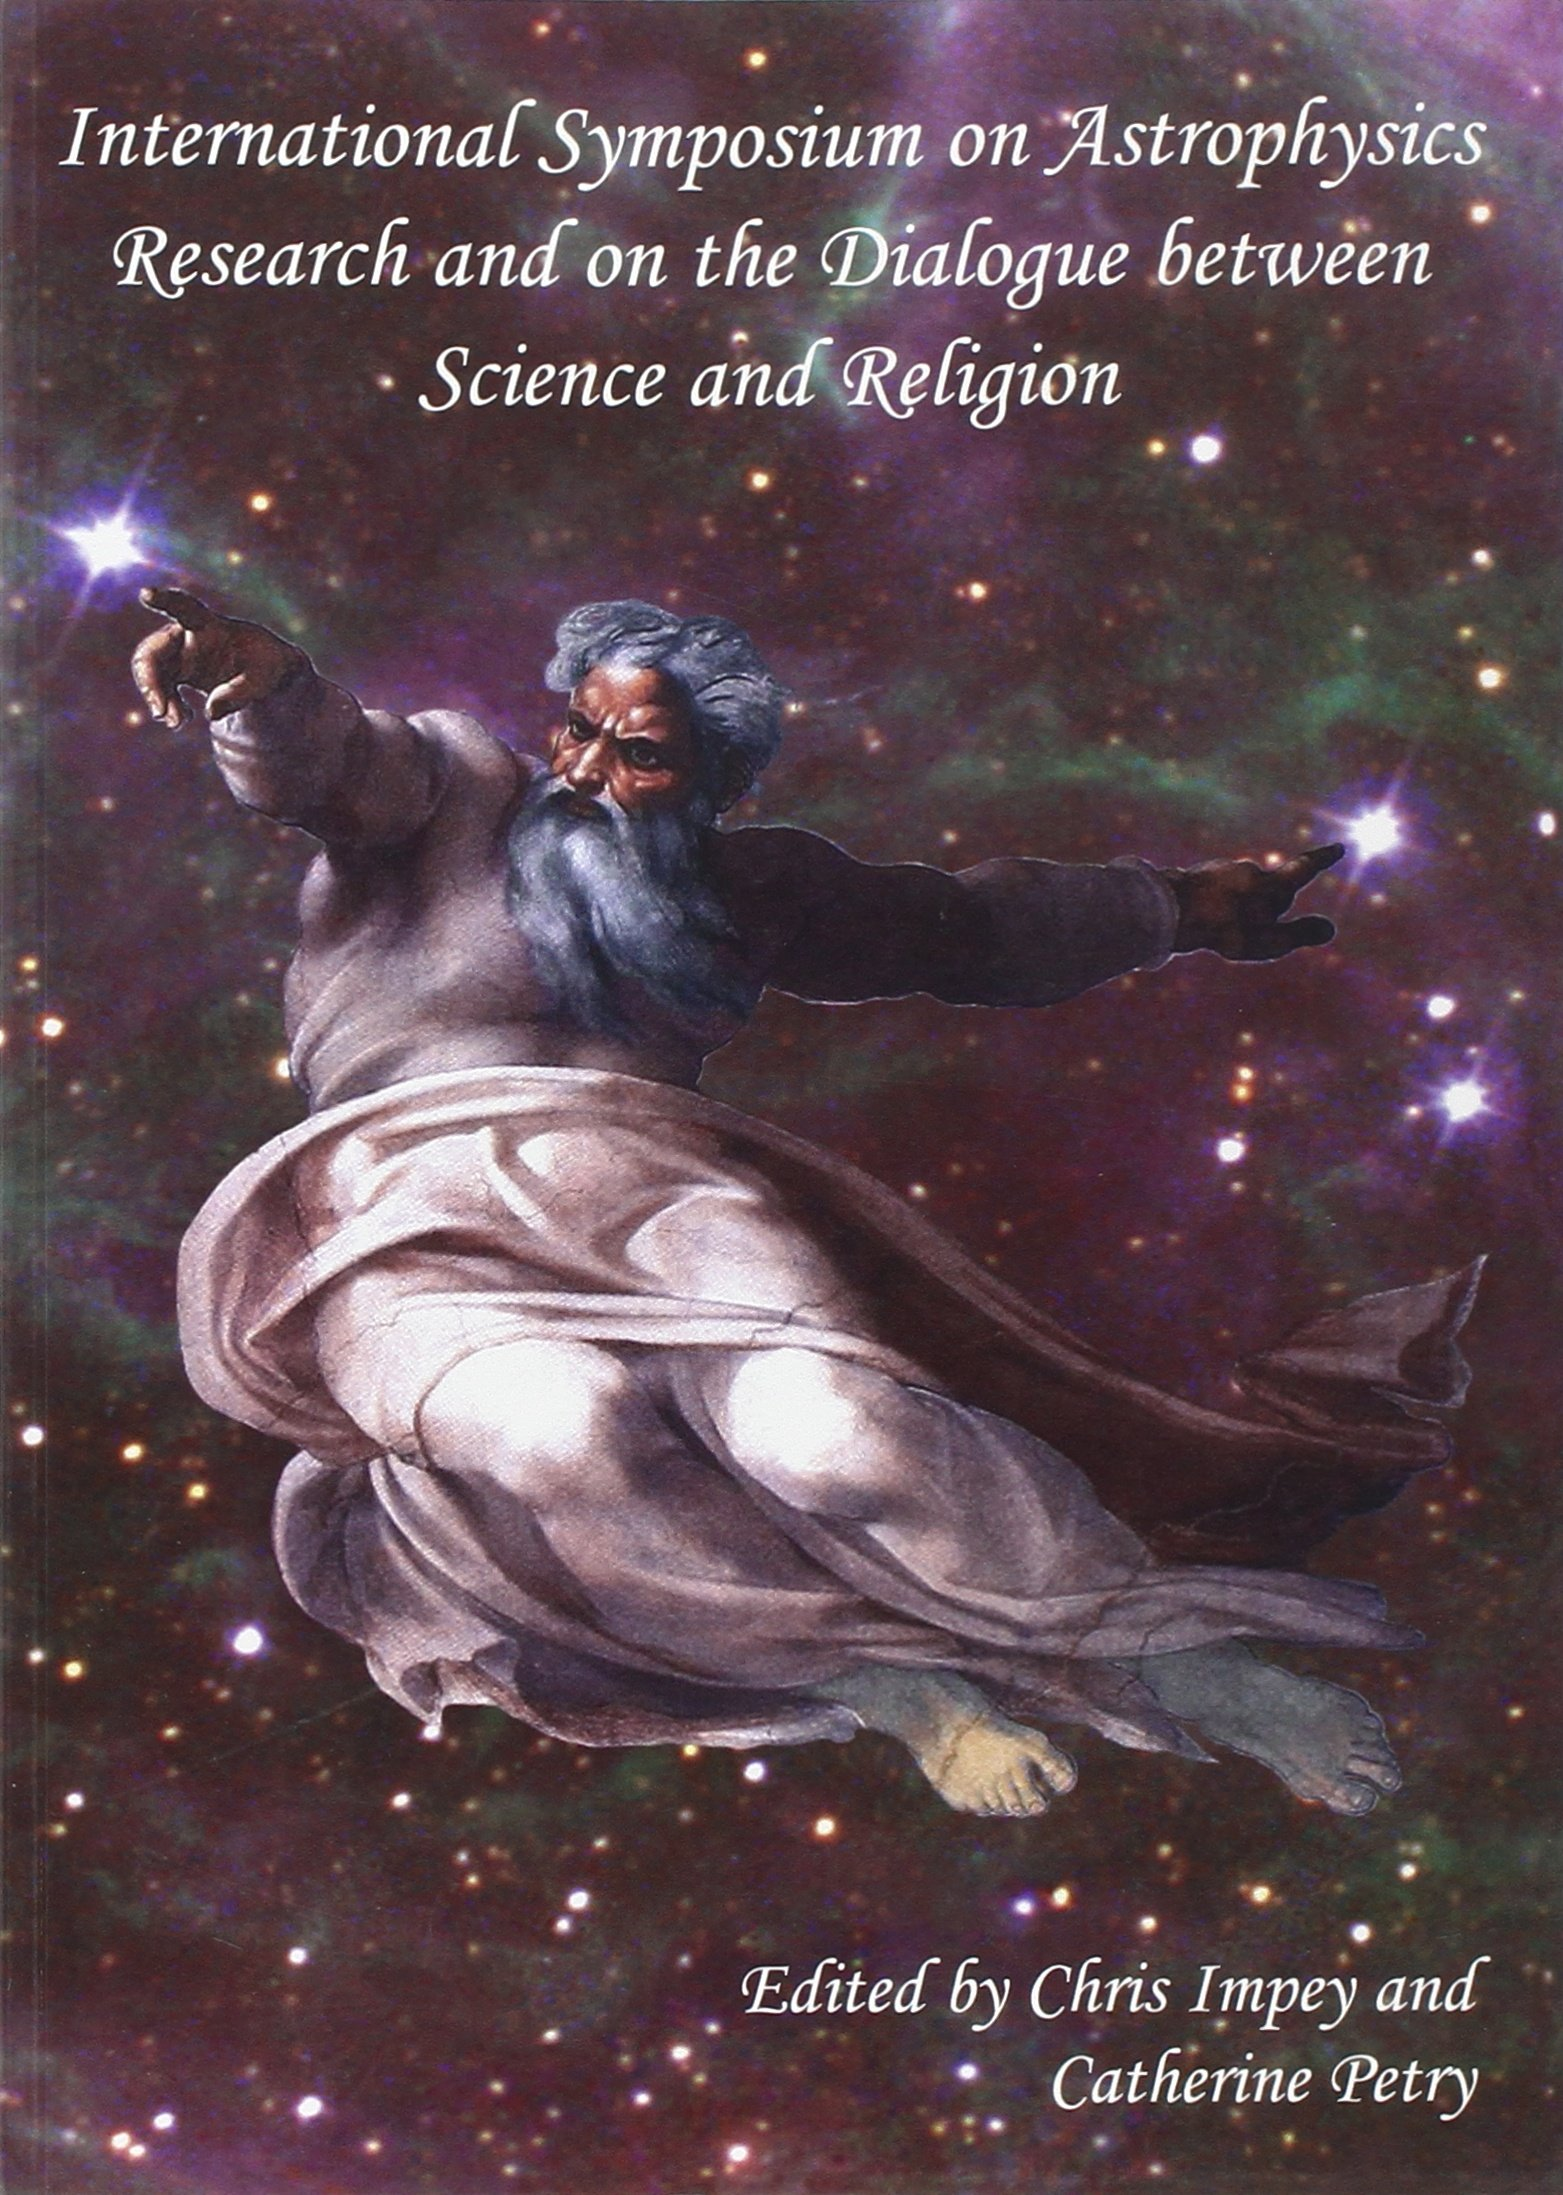 International Symposium on Astrophysics Research and on the Dialogue between Science and Religion (ND From Vatican Observatory Found) pdf